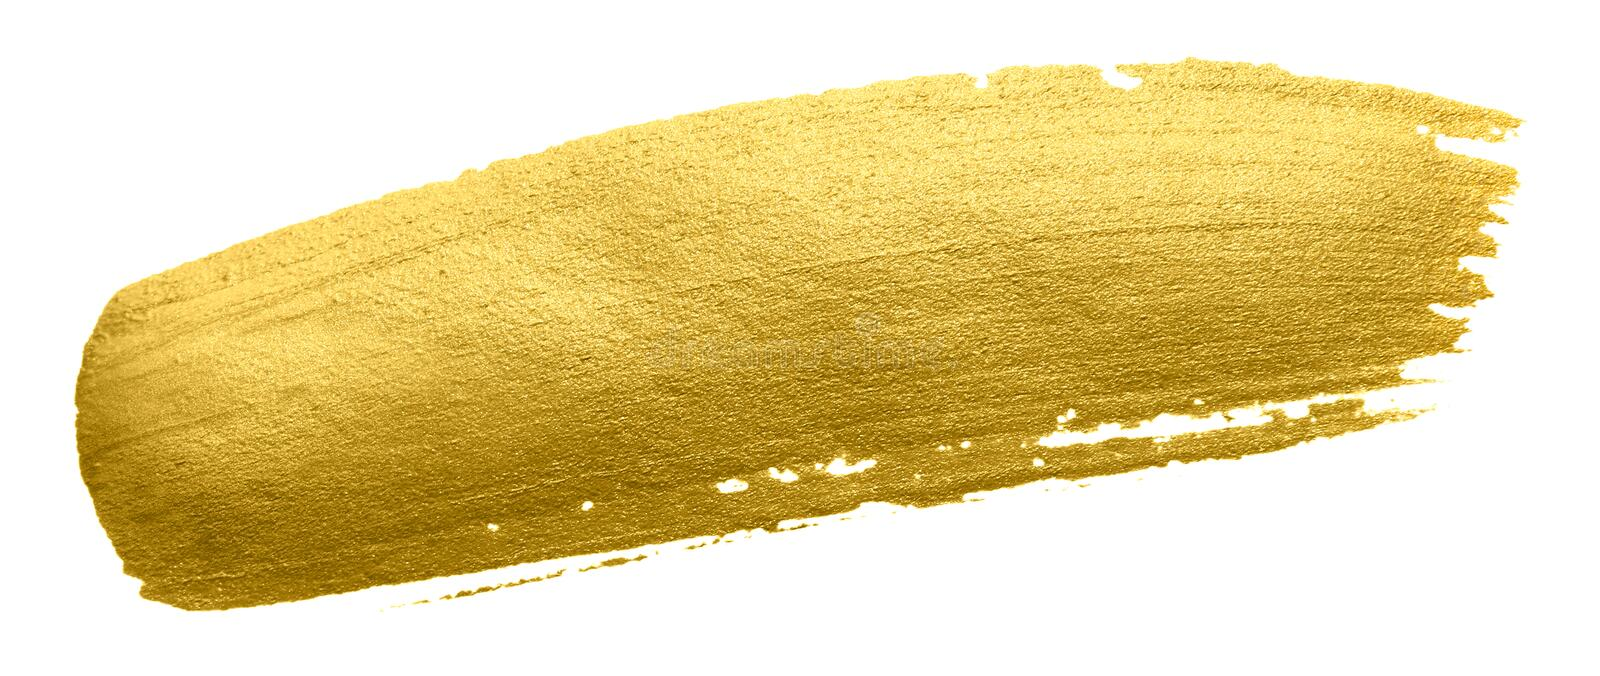 Gold paint brush smear stroke. Acrylic golden color stain on white background. Abstract gold glittering textured glossy illustrati royalty free stock images